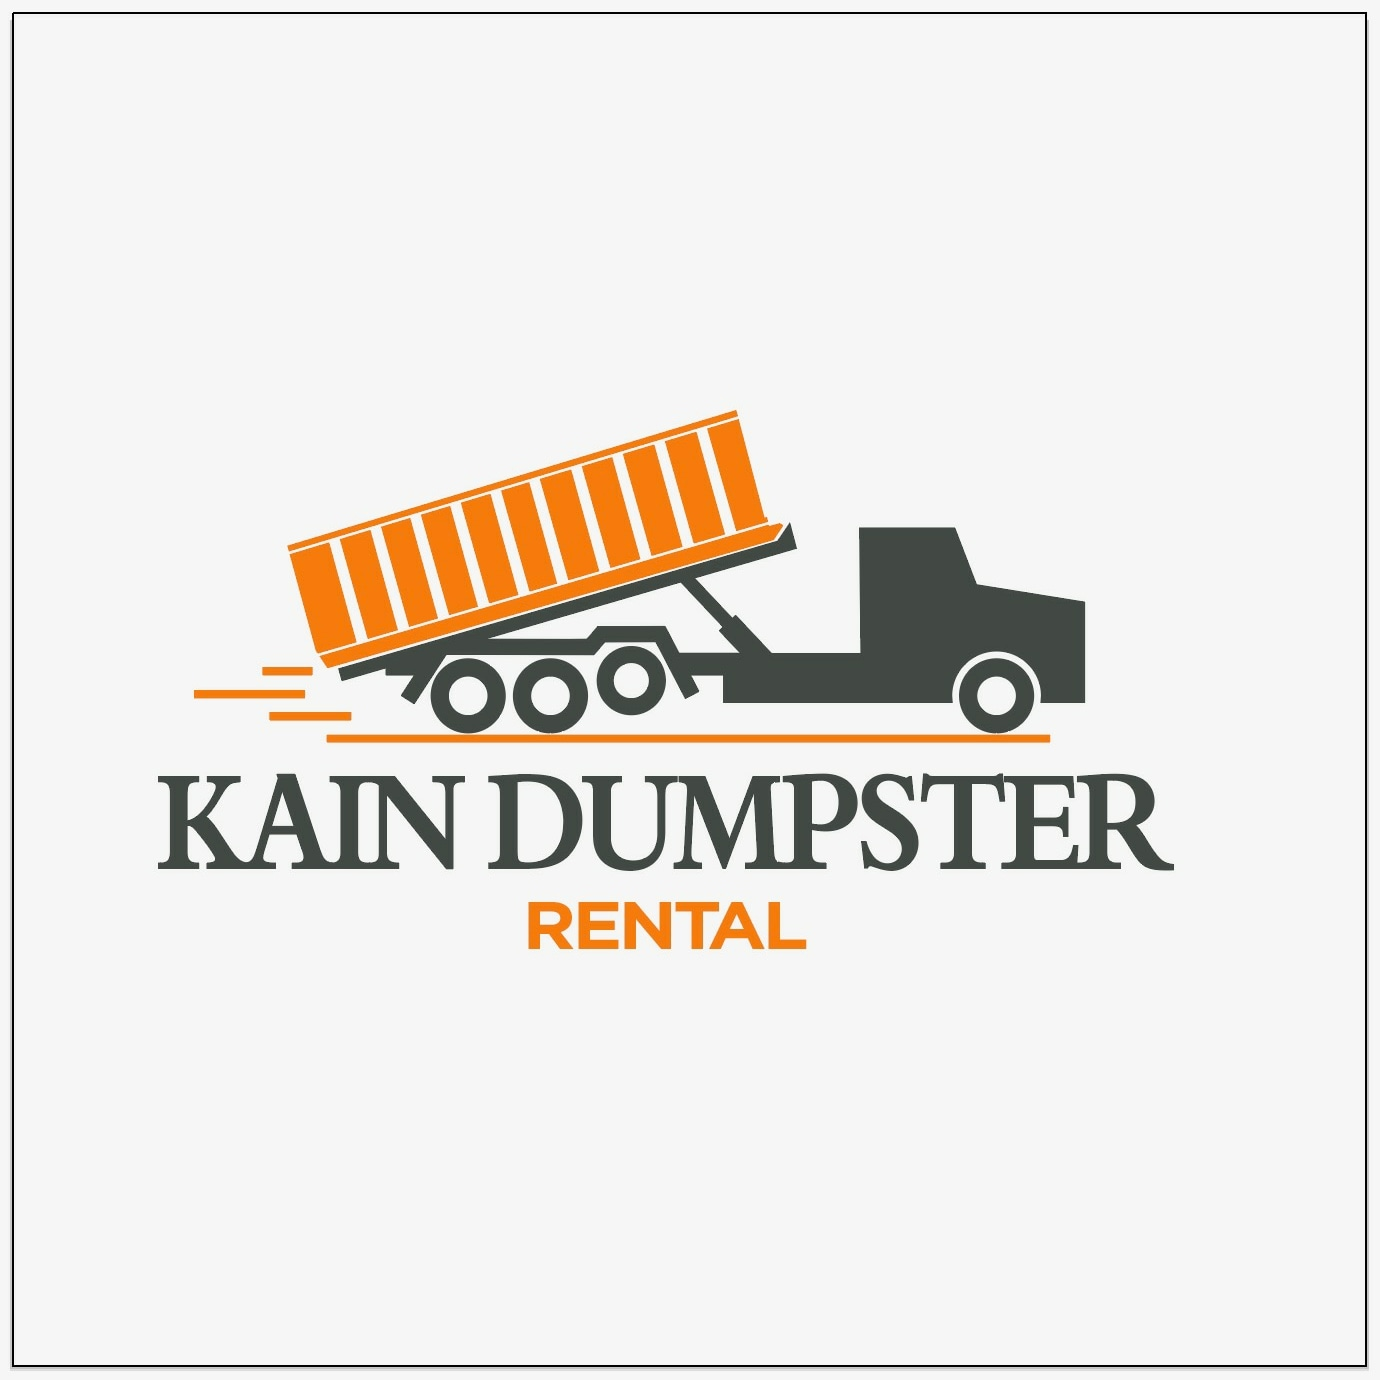 Phoenix Property Cleanup & Dumpster Rental